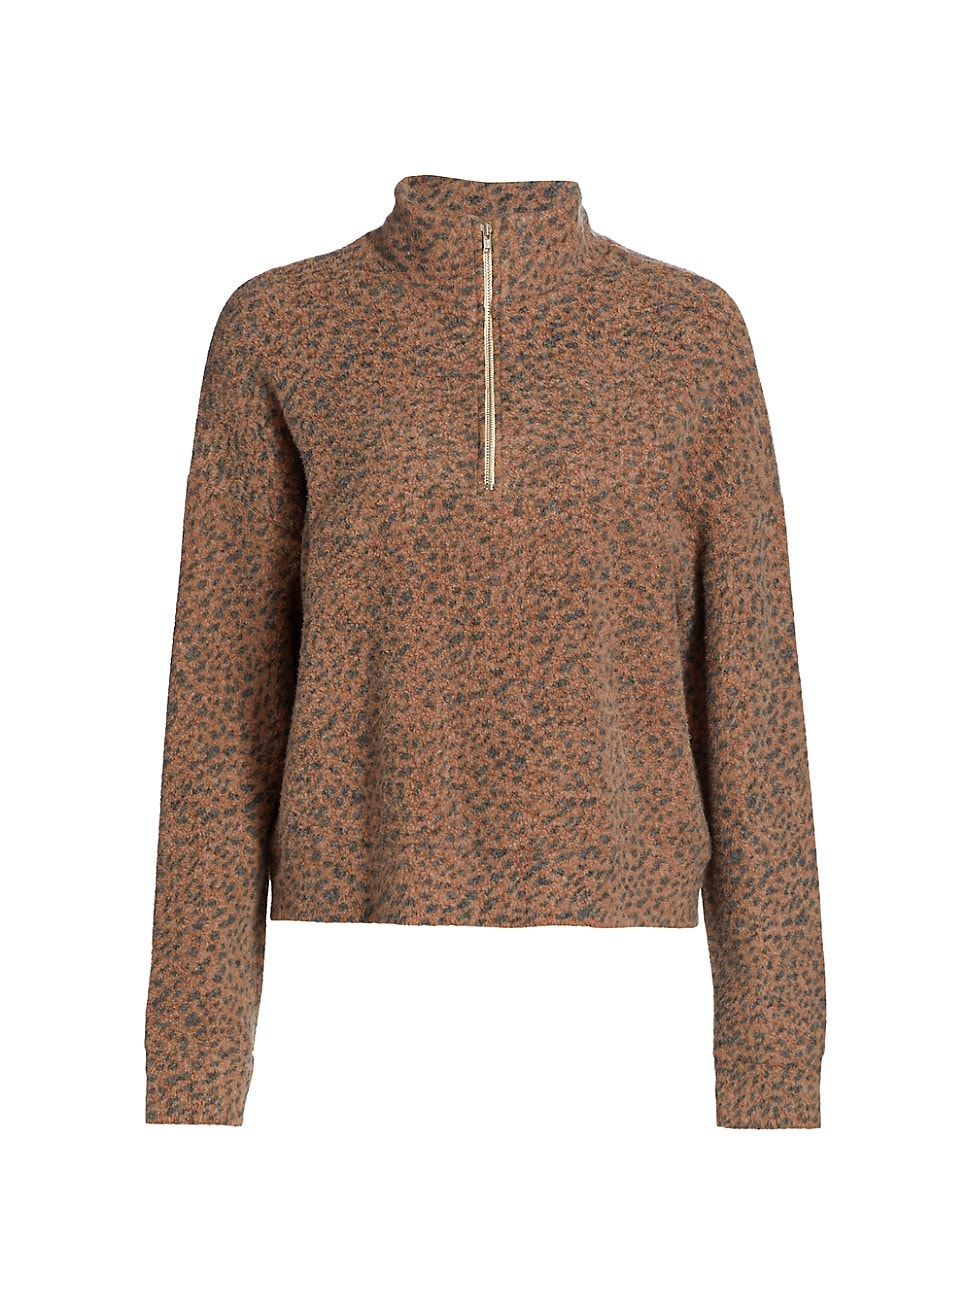 MONROW WOMEN'S MINI LEOPARD HALF-ZIP SWEATER